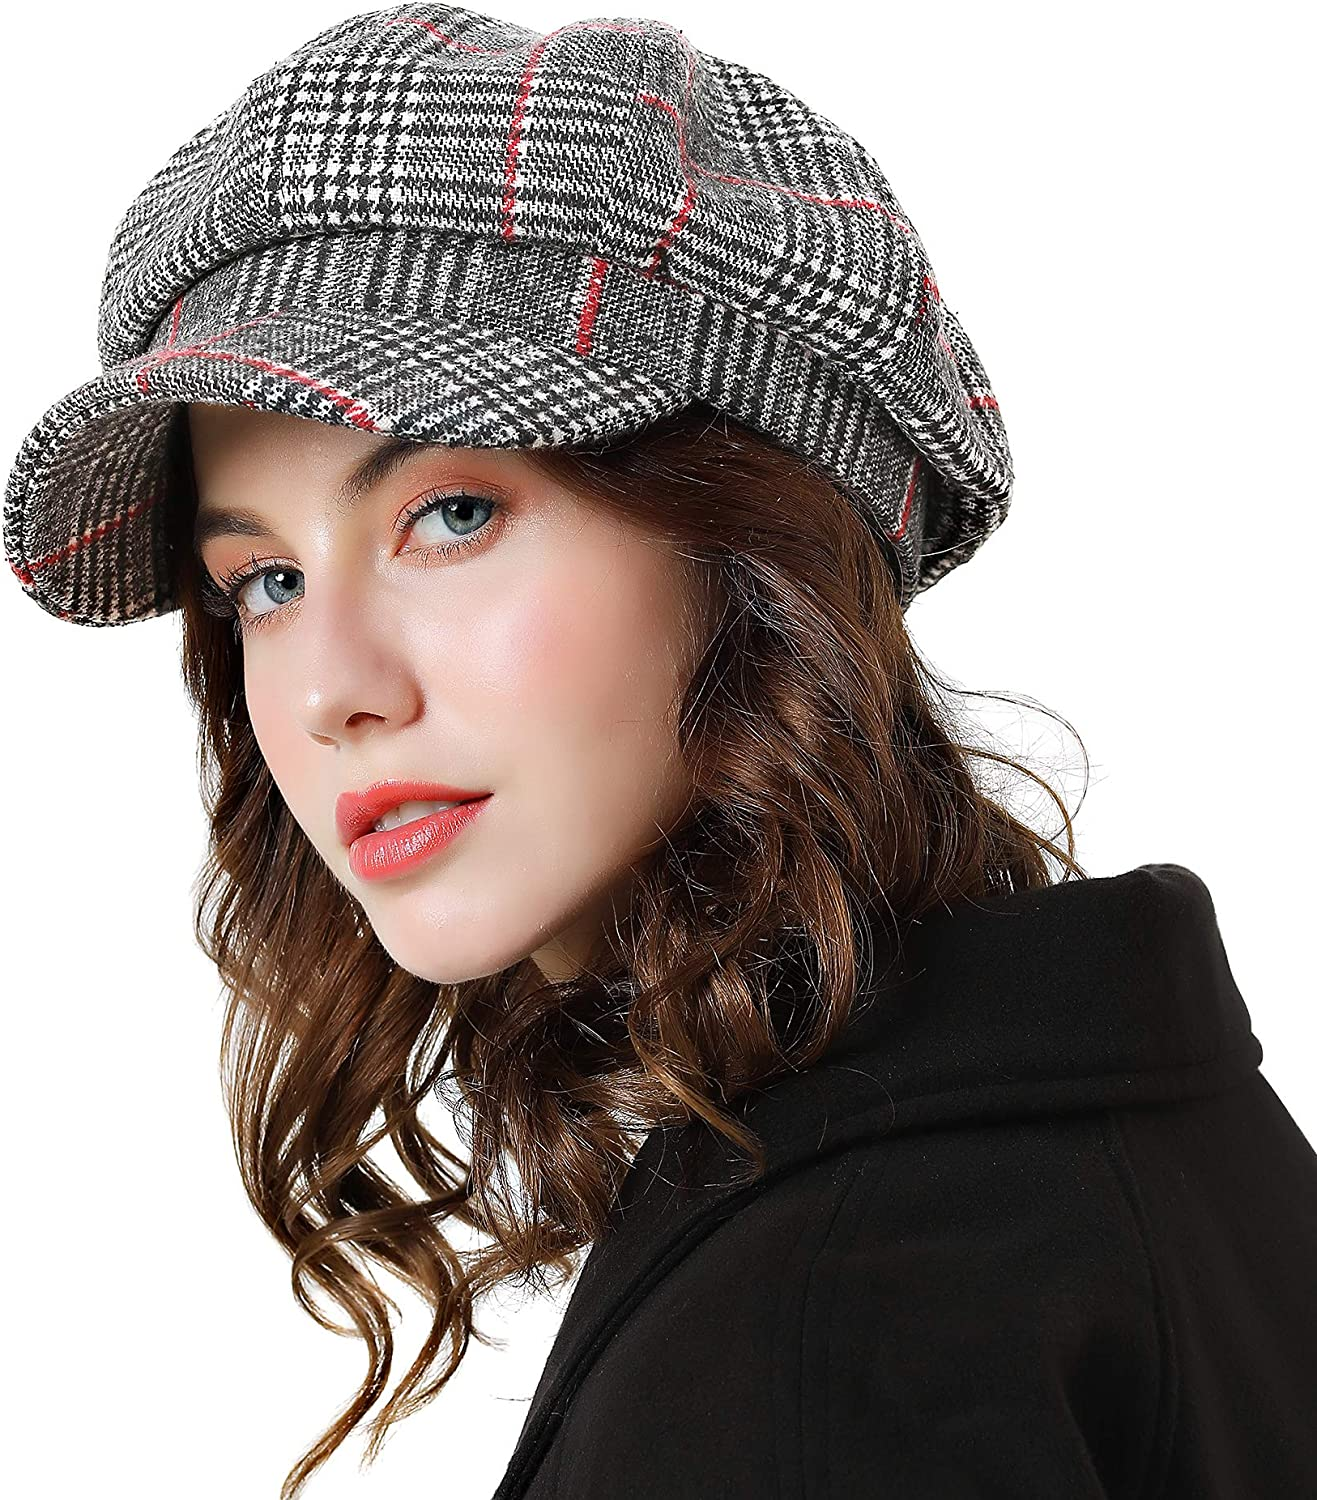 Sumolux Women Beret Newsboy Hat French Cotton Cap Classic Autumn Spring  Winter Hats at Amazon Women's Clothing store